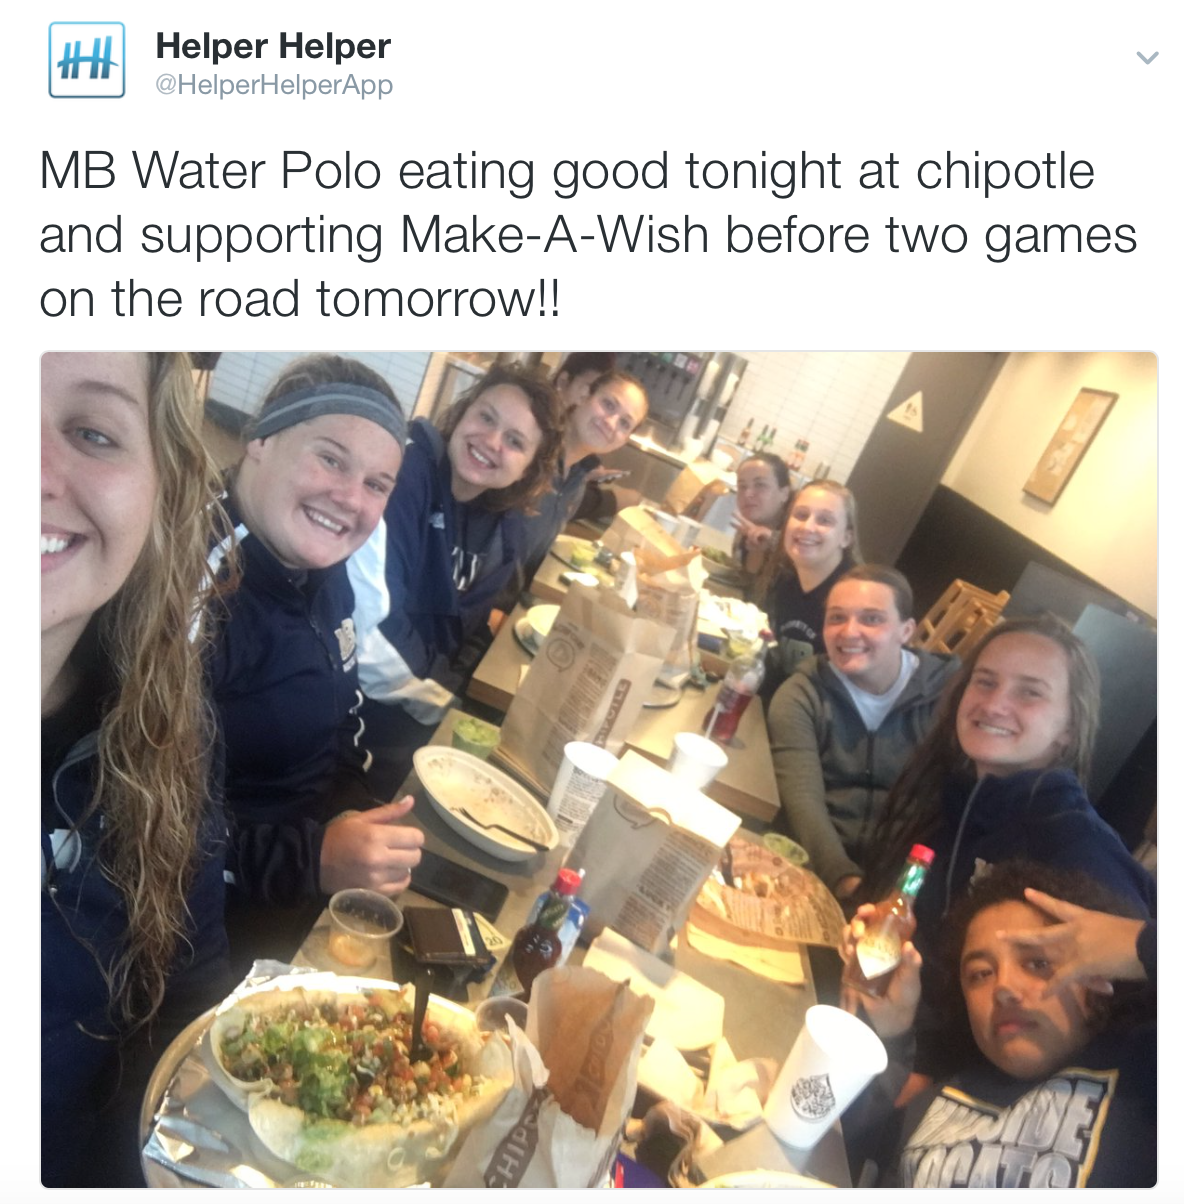 Burrito party for Make-A-Wish Foundation